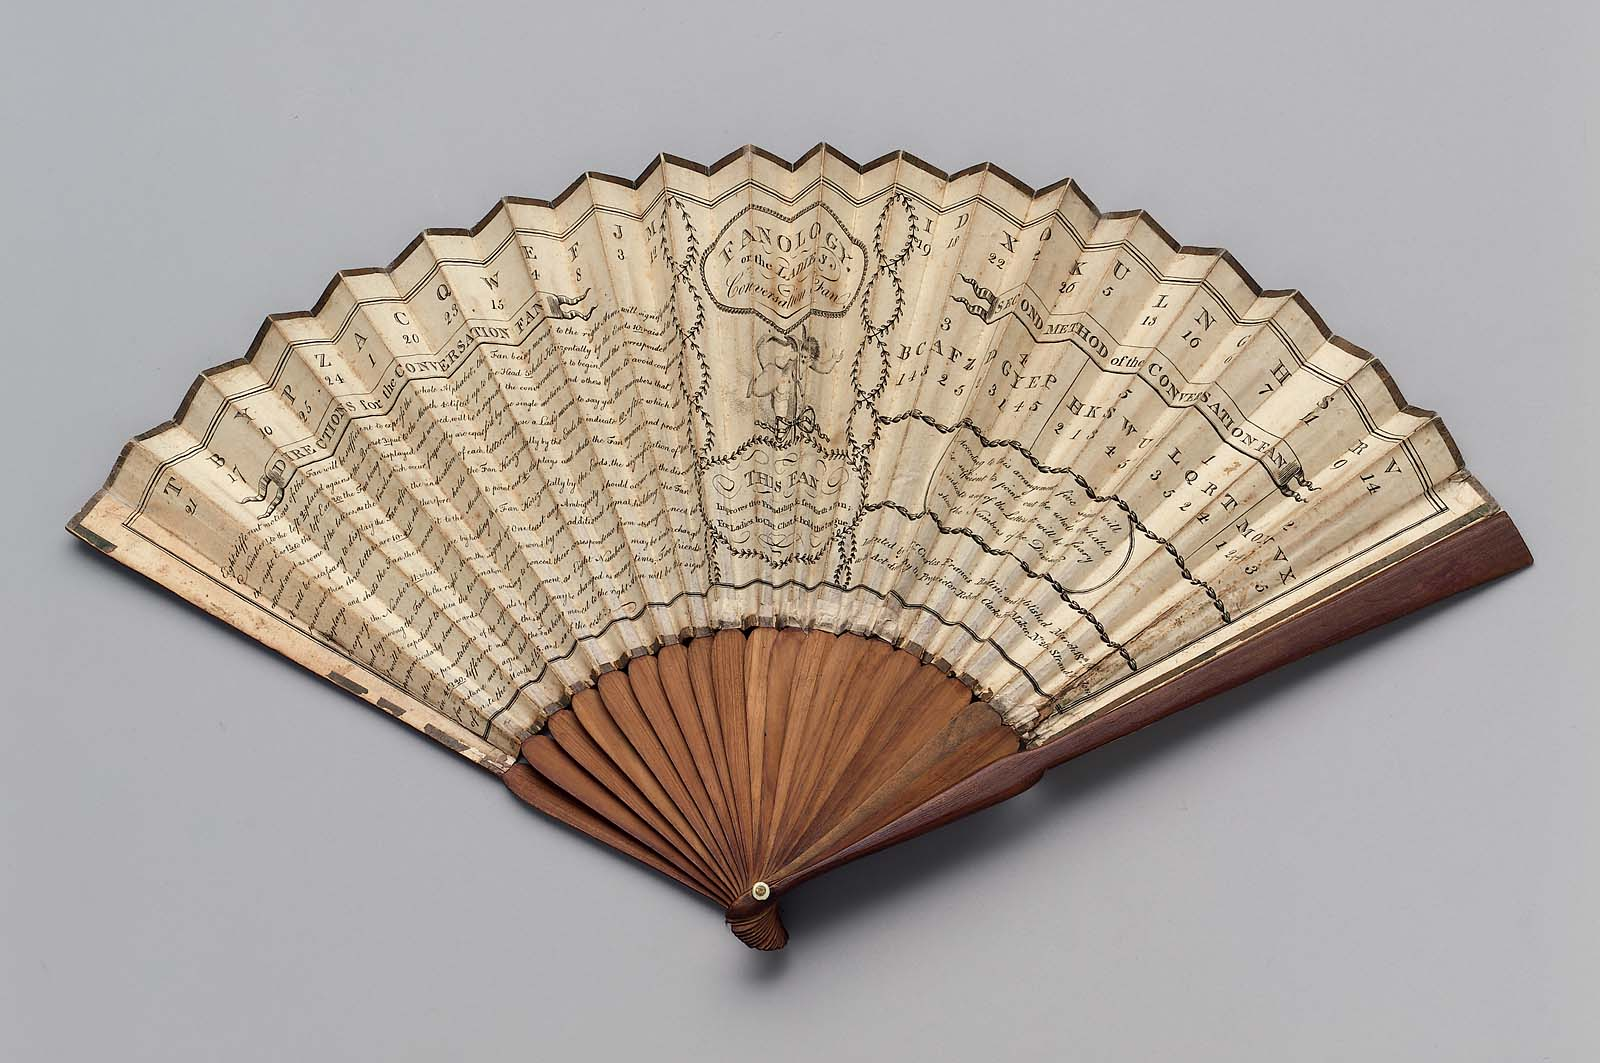 Wooden and paper fan splayed open on white background